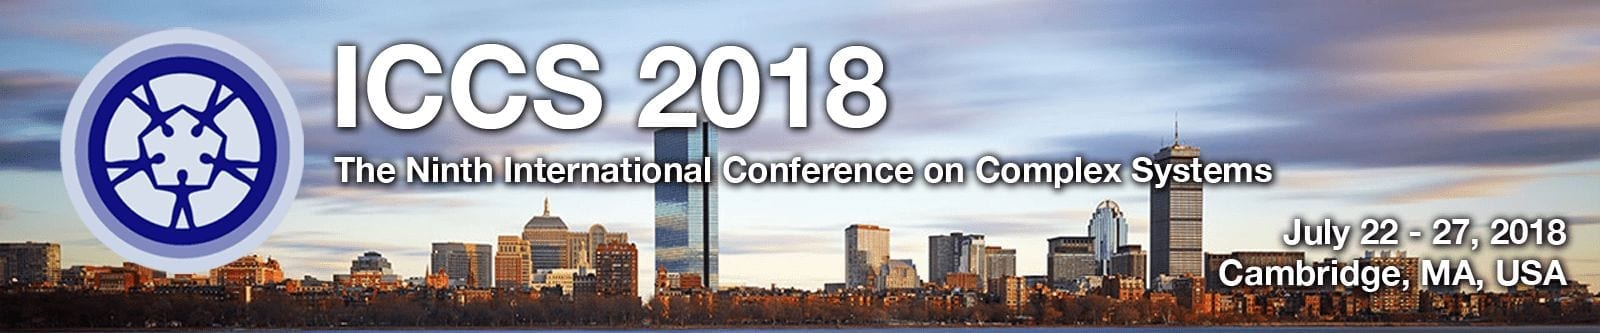 The Ninth International Conference on Complex Systems 2018 Sponsored by NECSI